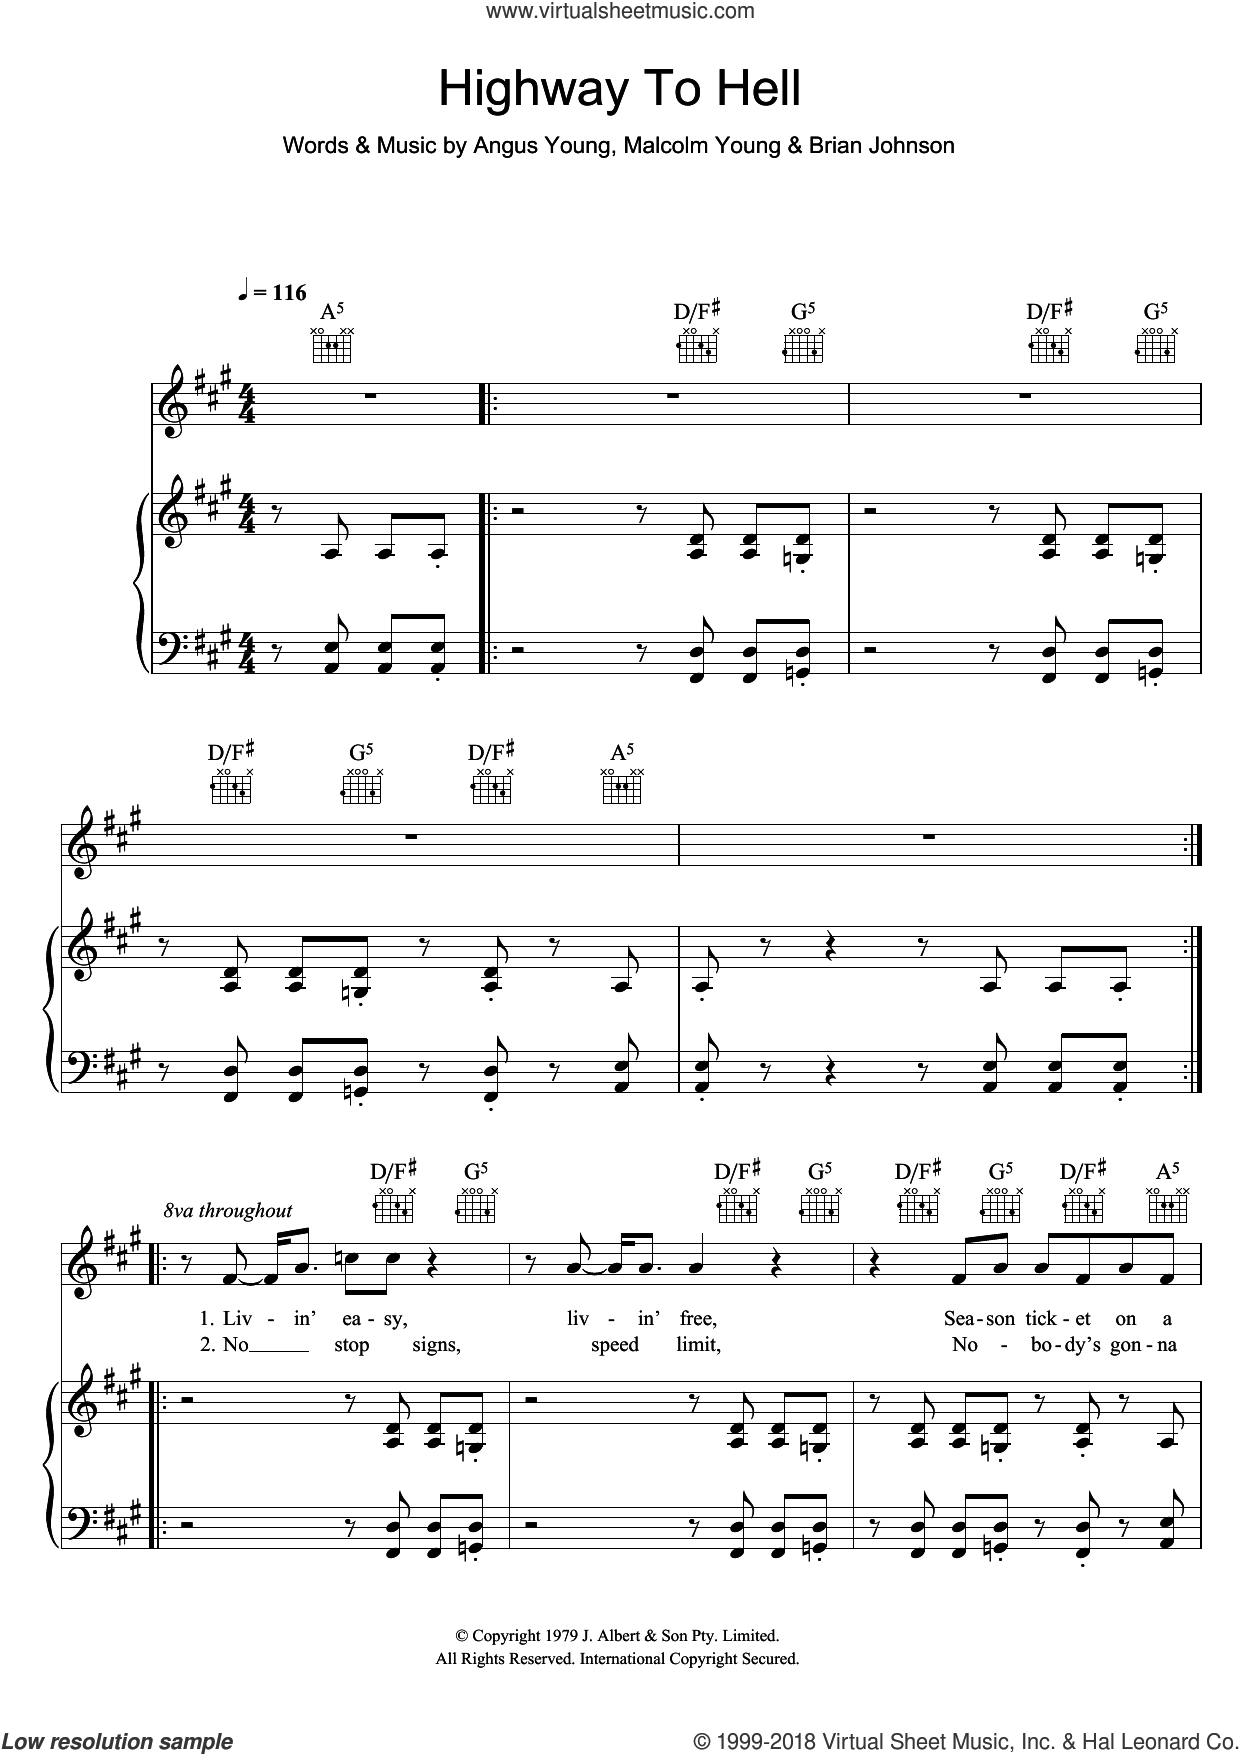 Highway To Hell sheet music for voice, piano or guitar by AC/DC, Angus Young, Brian Johnson and Malcolm Young, intermediate skill level